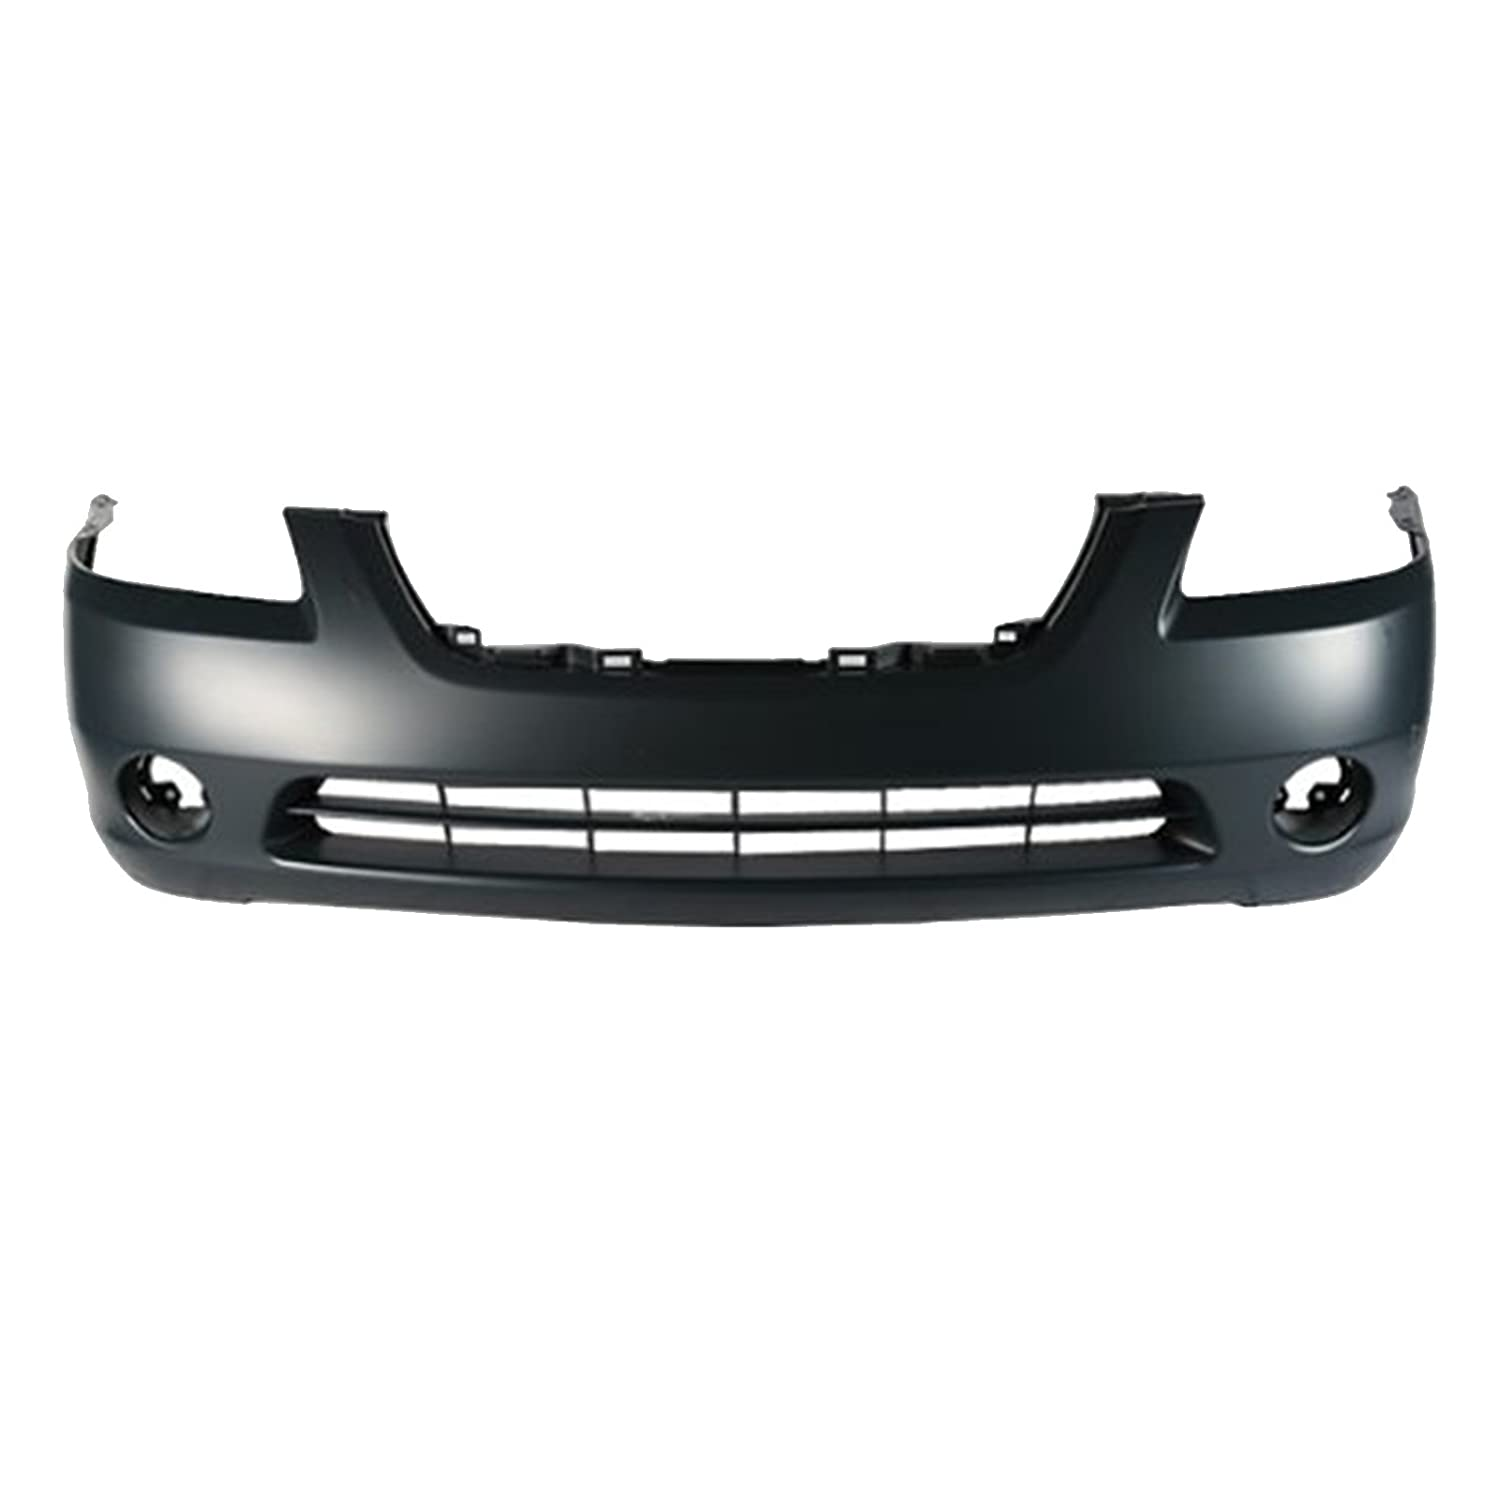 NI1000193 Painted to Match Front Bumper Cover Fascia Replacement for 2002 2003 2004 Nissan Altima 02 03 04 MBI AUTO